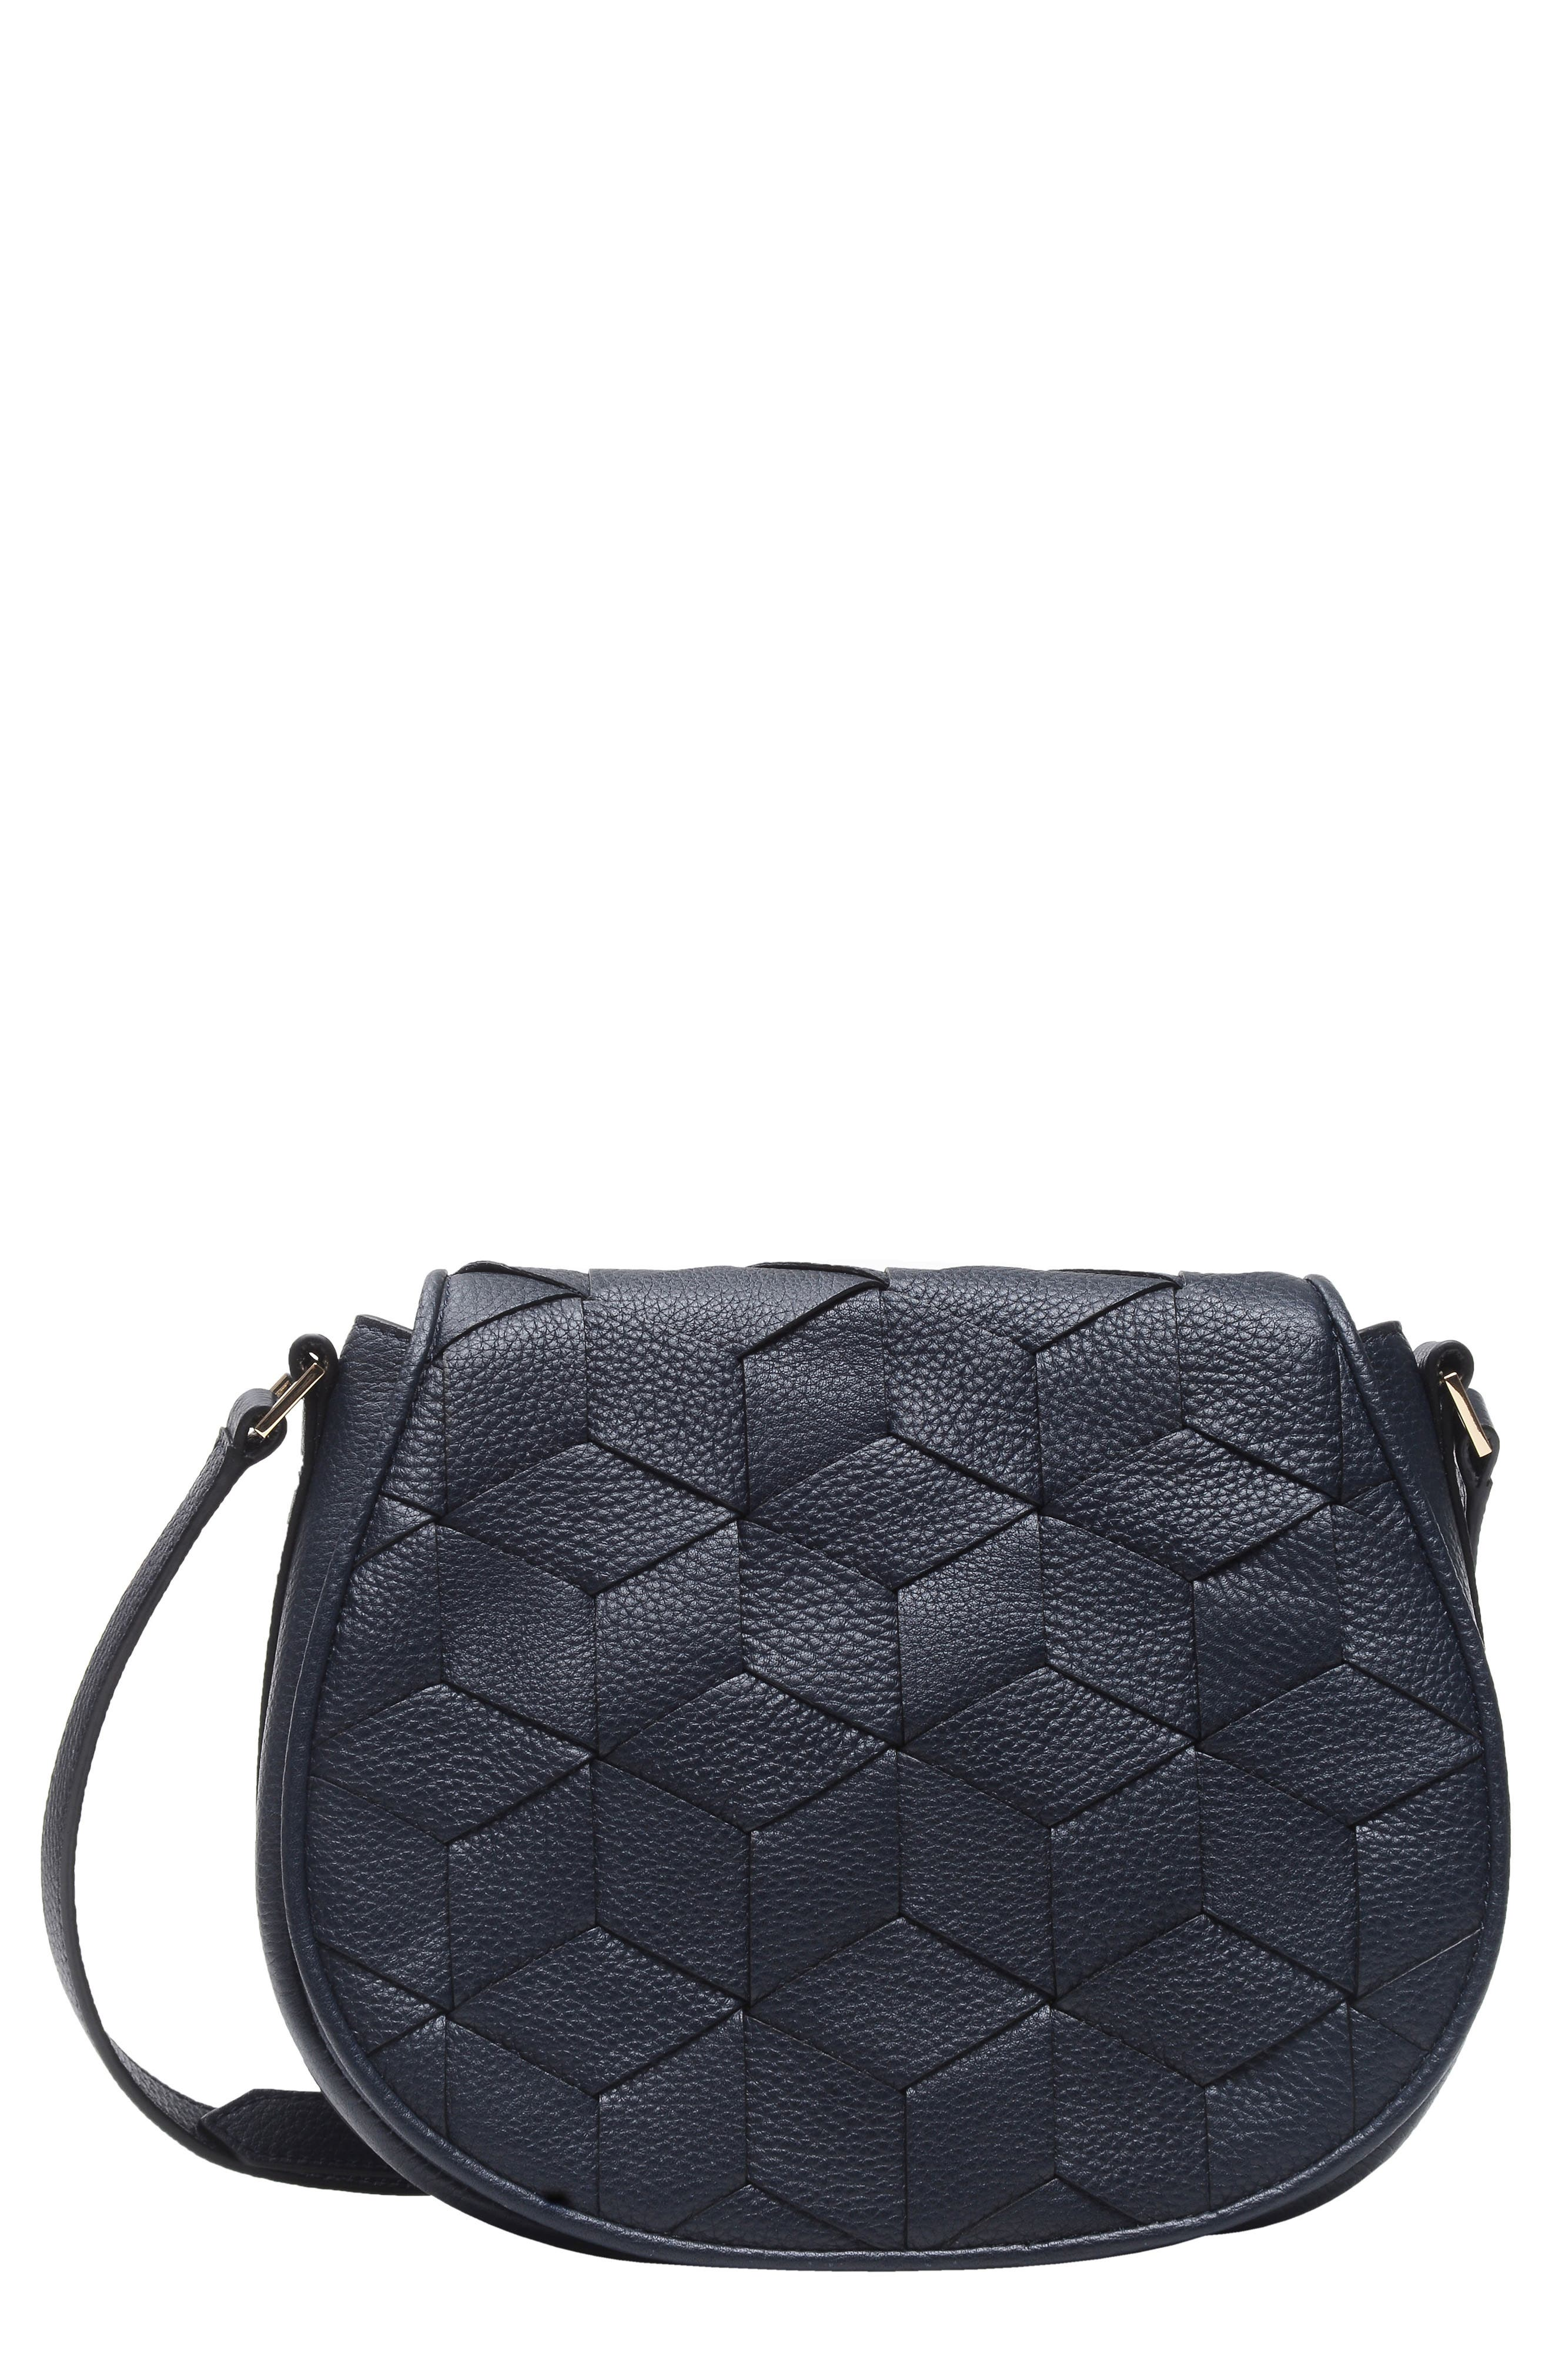 Escapade Pebbled Leather Saddle Bag,                             Main thumbnail 1, color,                             NAVY